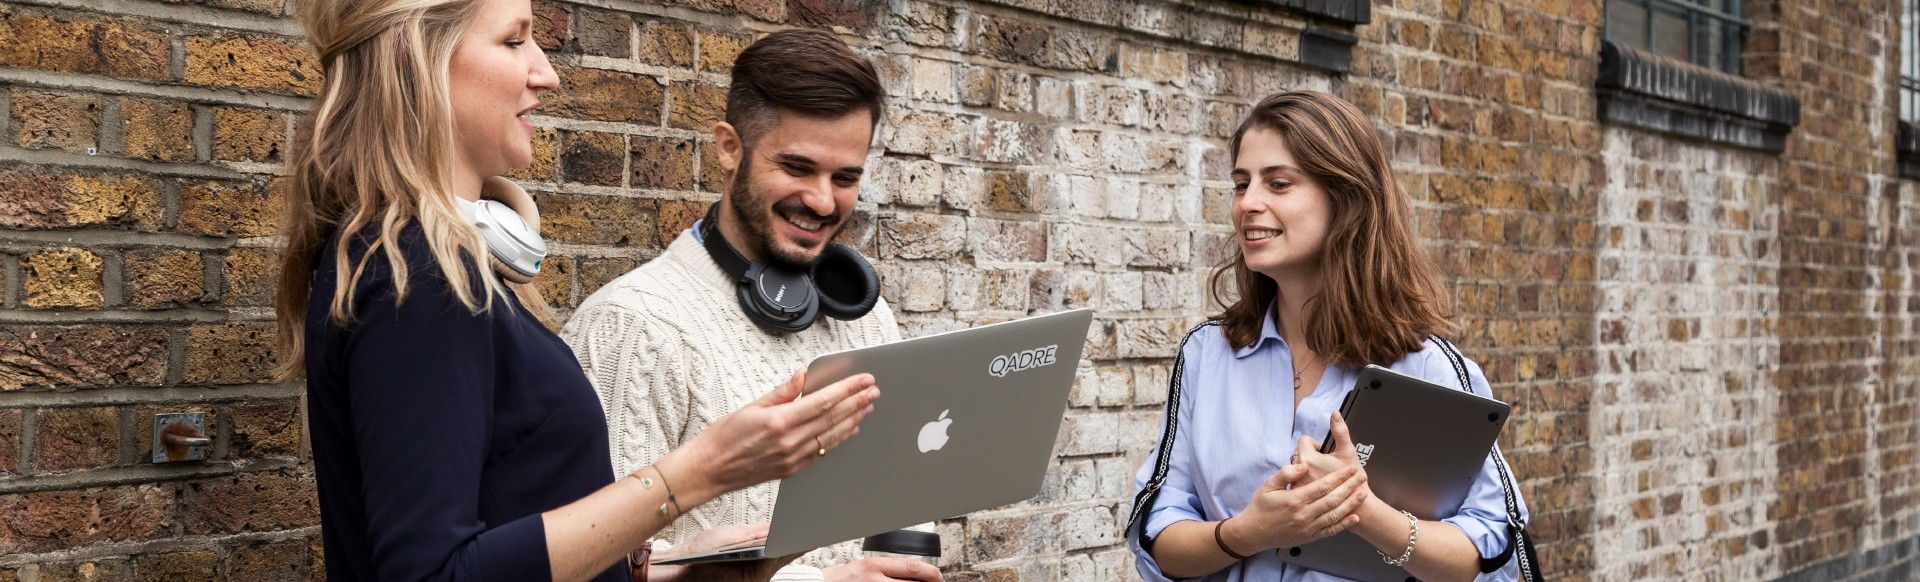 Two young people are standing in front of a brick wall, holding a large iPad and notebook, having a work catch up.